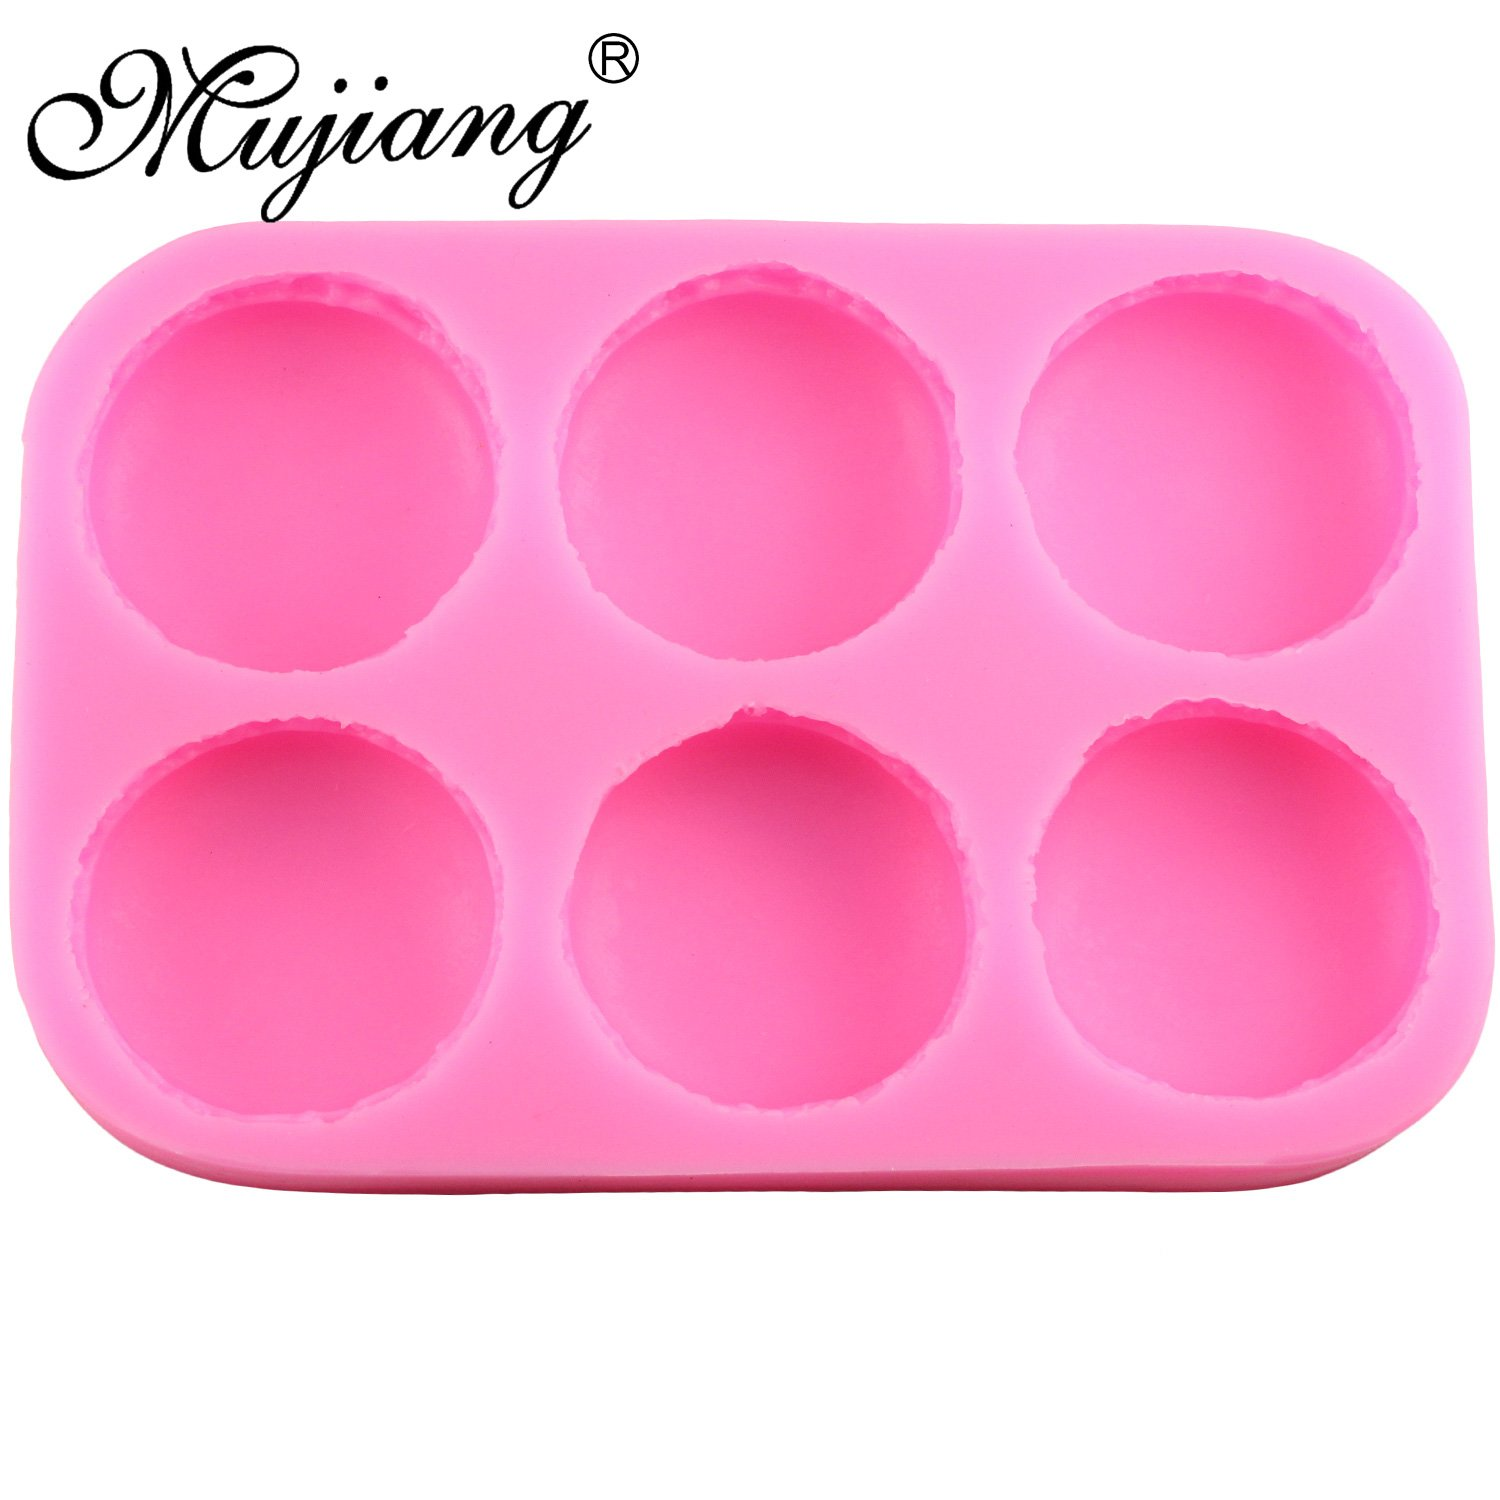 Star Trade Inc 6 Cavity Macaroon Hamburger Cake Silicone Molds Fondant Cake Decorating Tools Chocolate Candy Mold Fimo Clay Soap Moulds 1 pcs